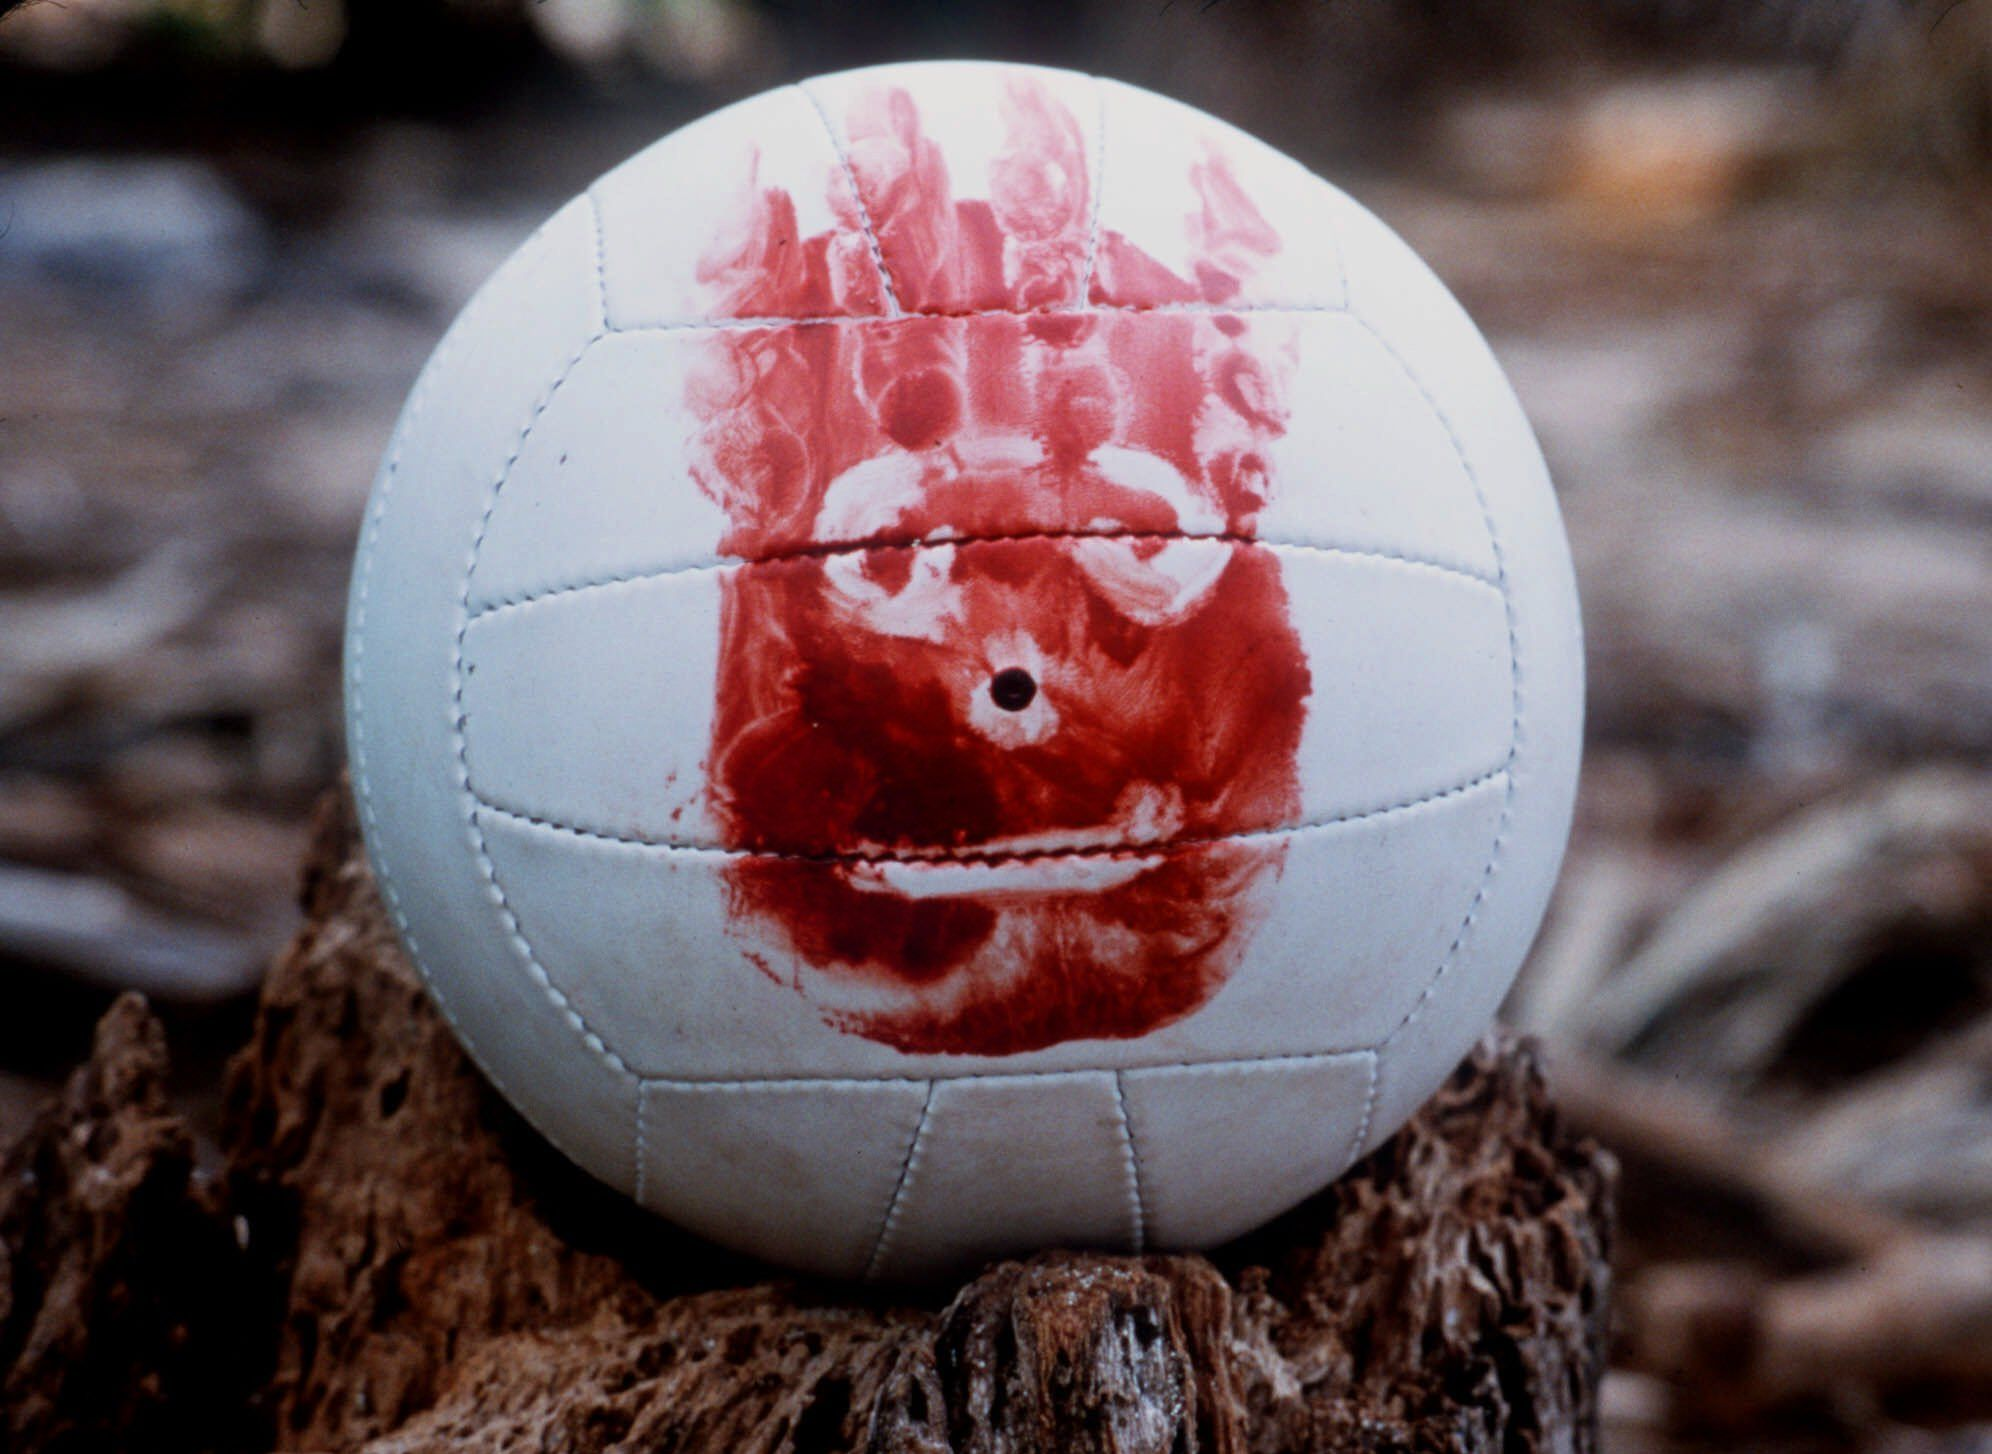 Pin By Curtis Distaso On Art Tom Hanks It Movie Cast Wilson Castaway